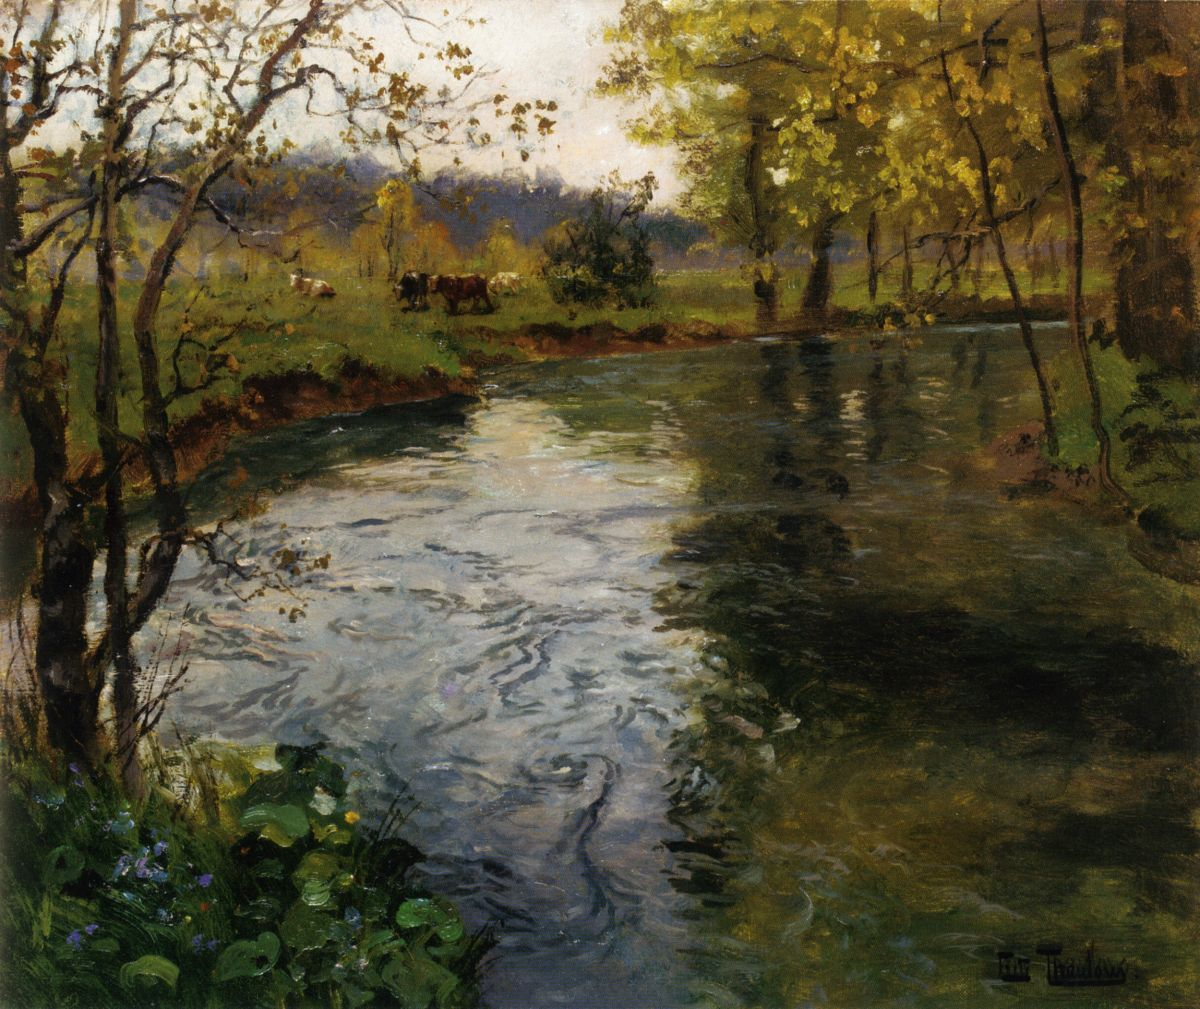 Landscape with Cows by a Stream by Fritz Thaulow